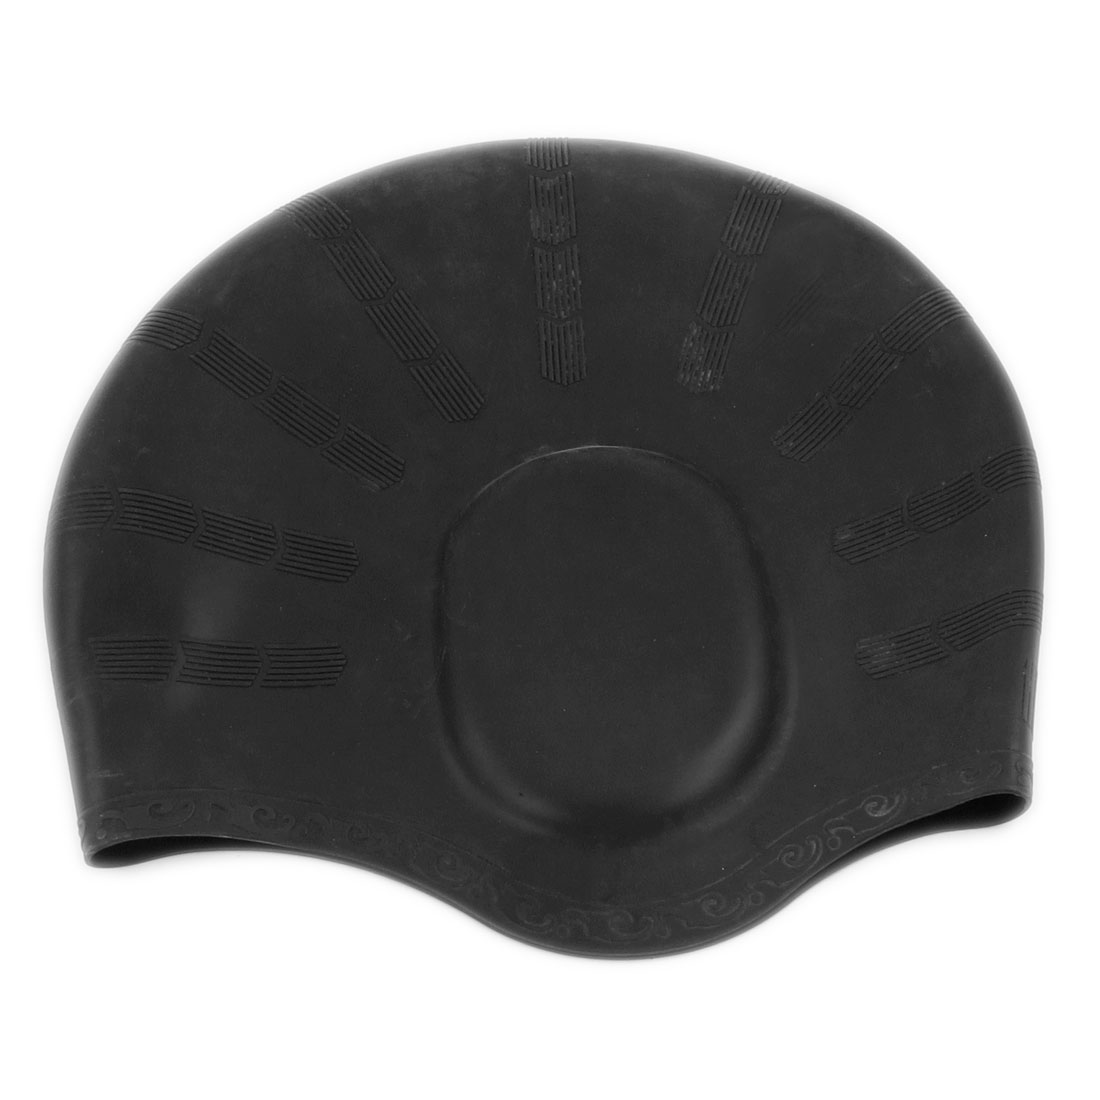 Black Silicone Elastic Swimming Cap for Adult Swimmers